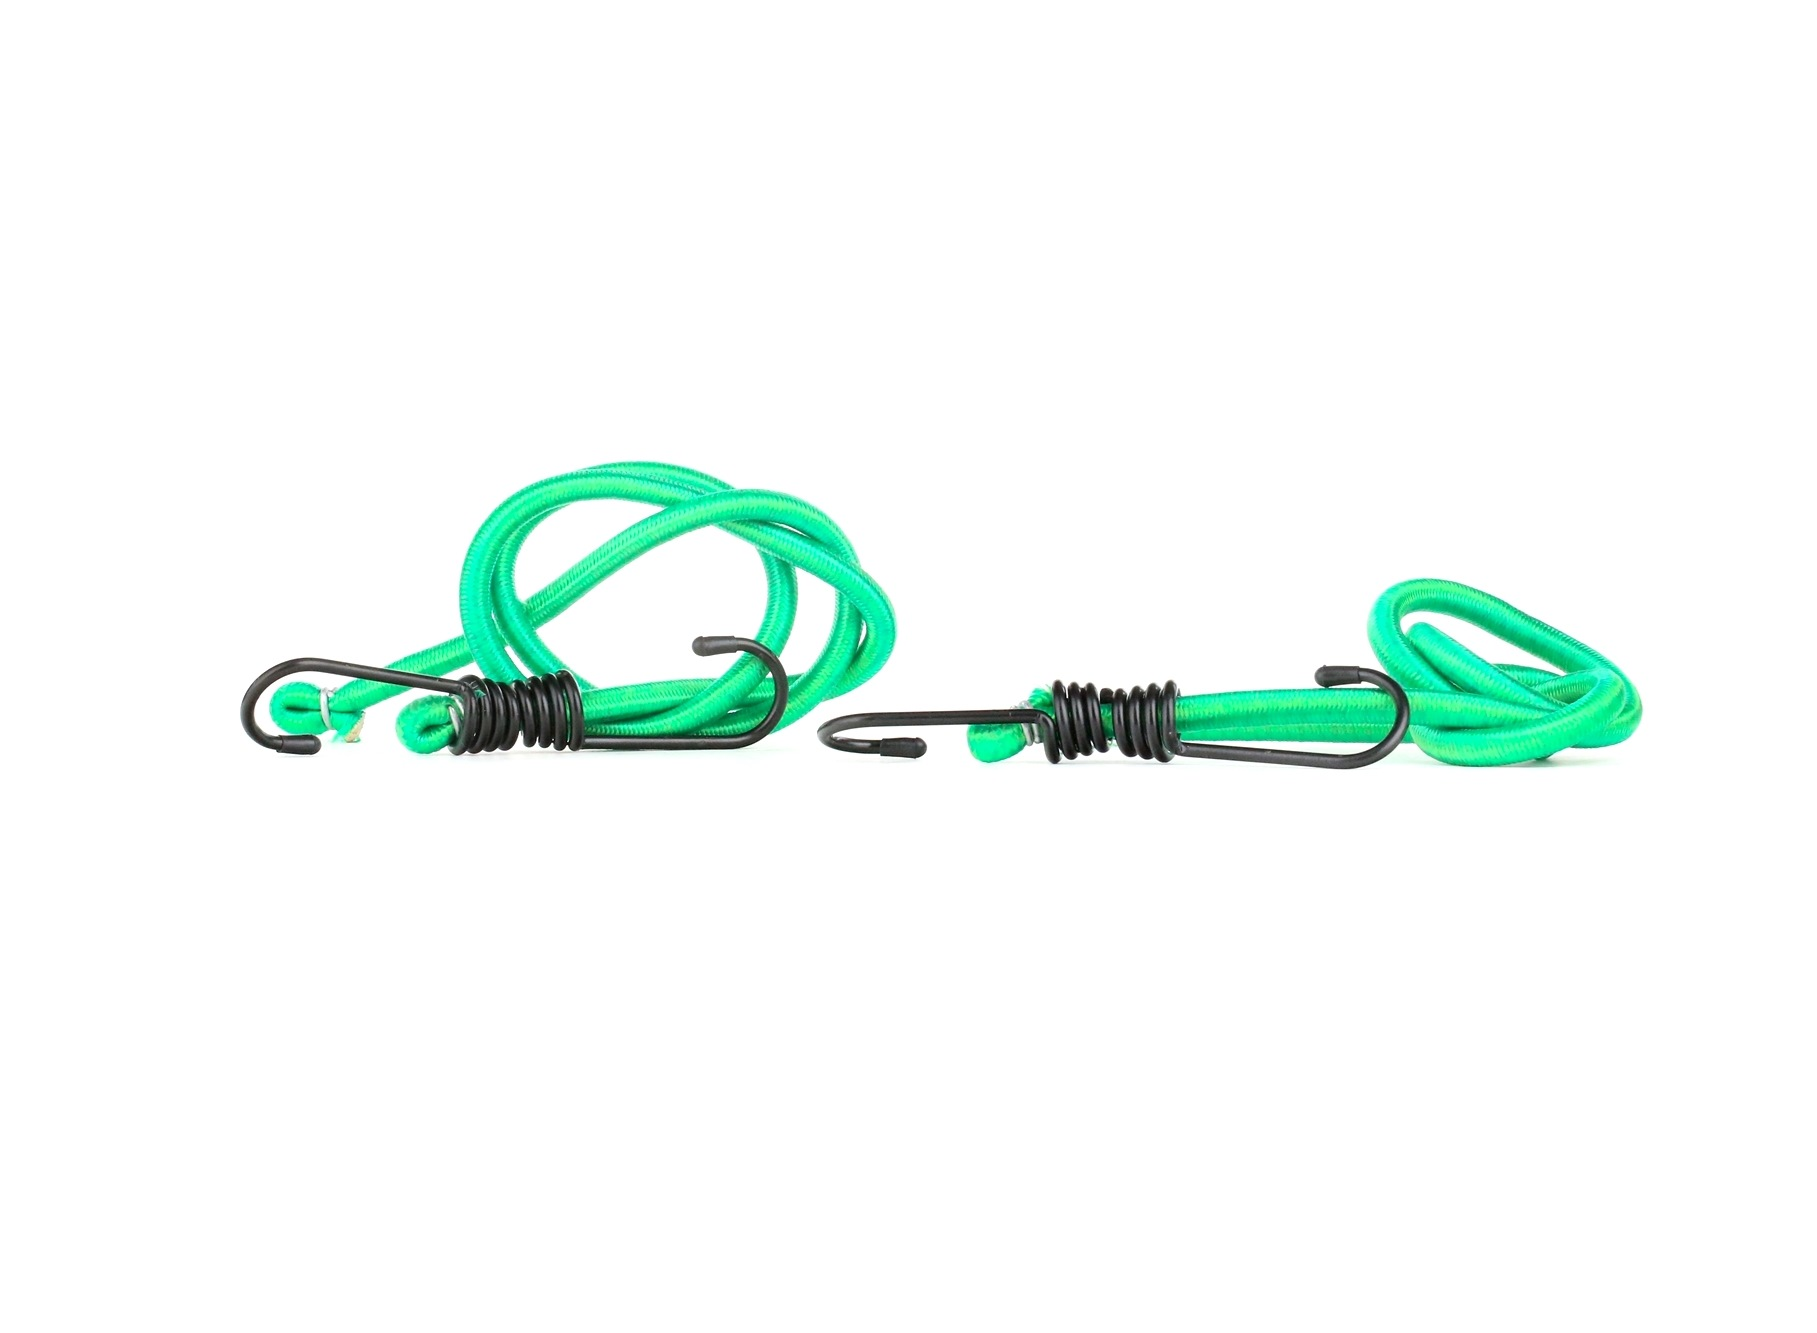 Bungee cords VIRAGE 93-004 rating